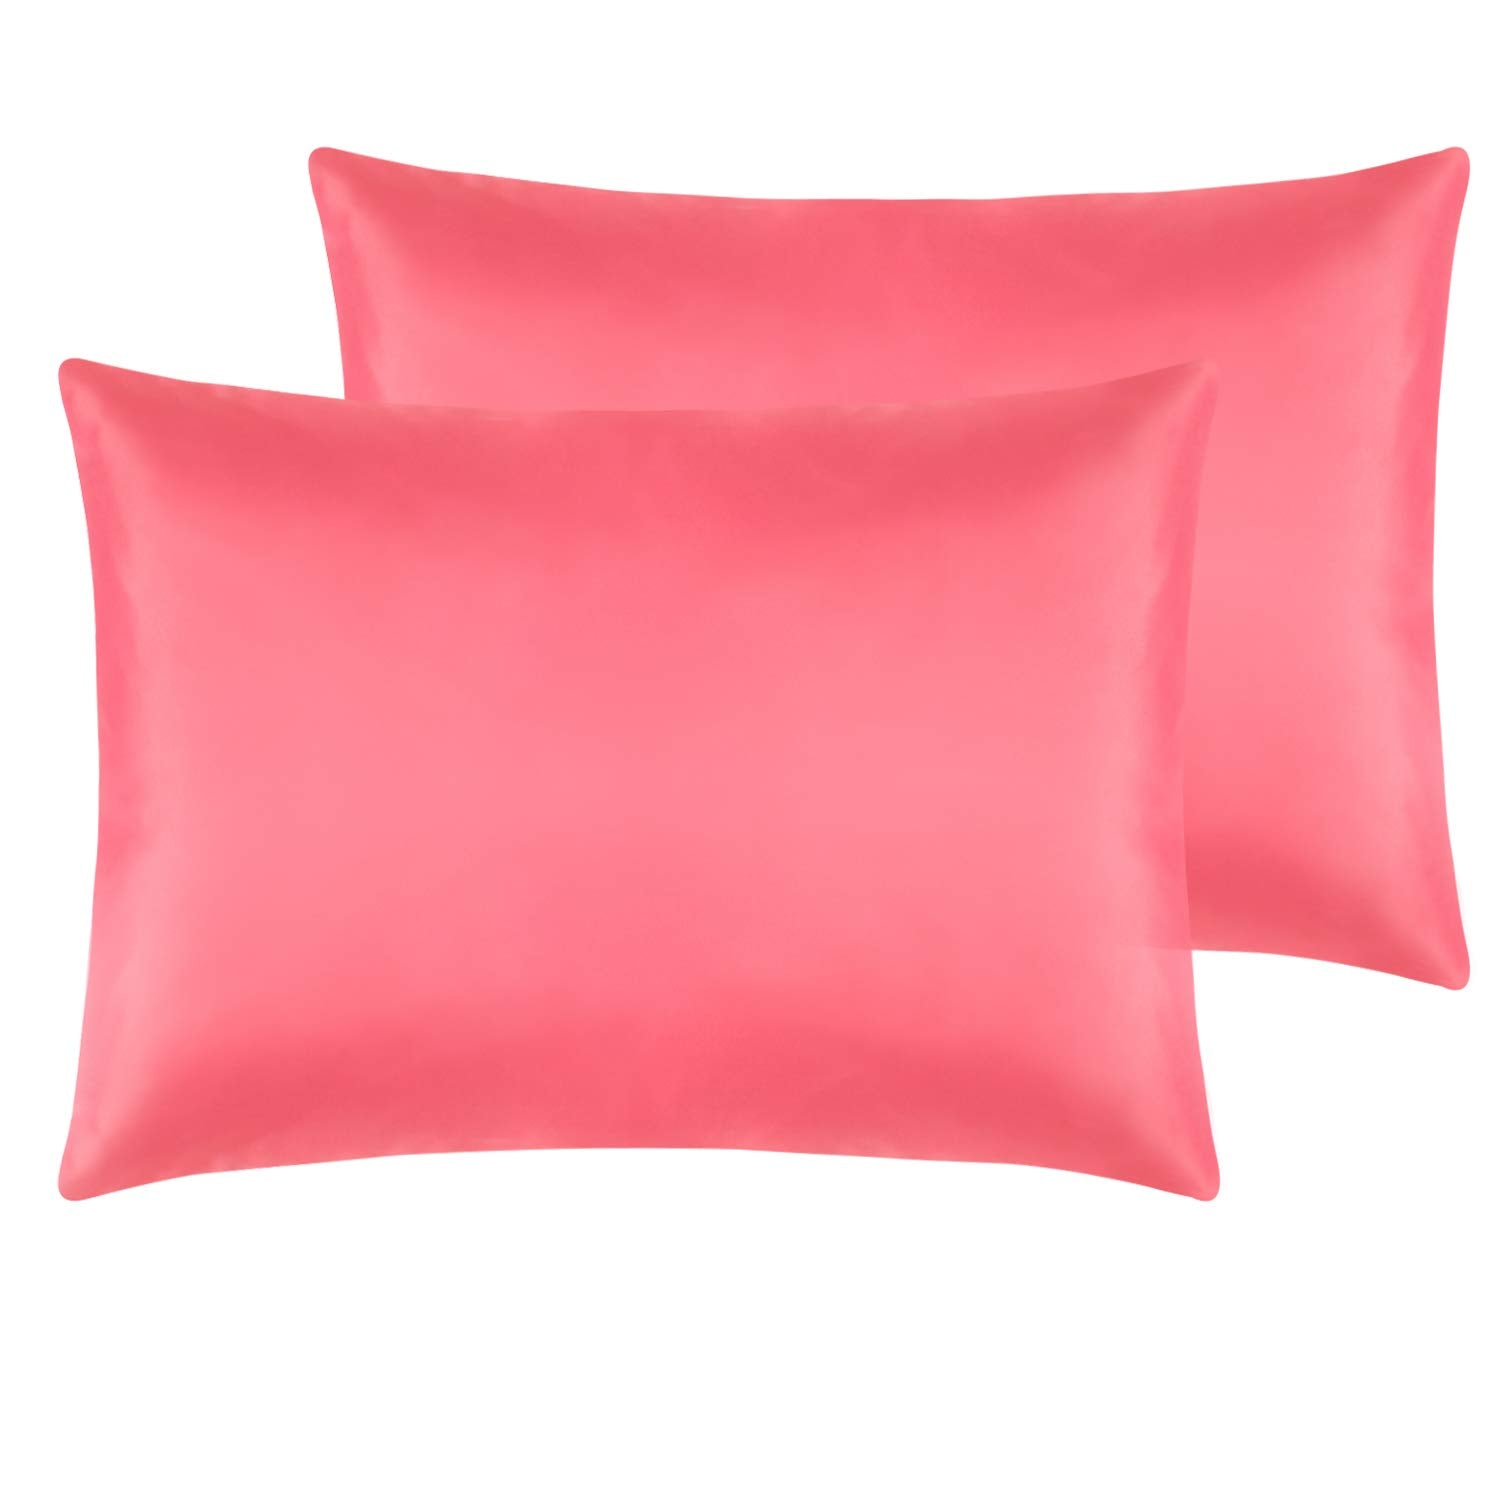 Satin Pillowcases Summer White Standard Queen Set of 2 FREE Shipping